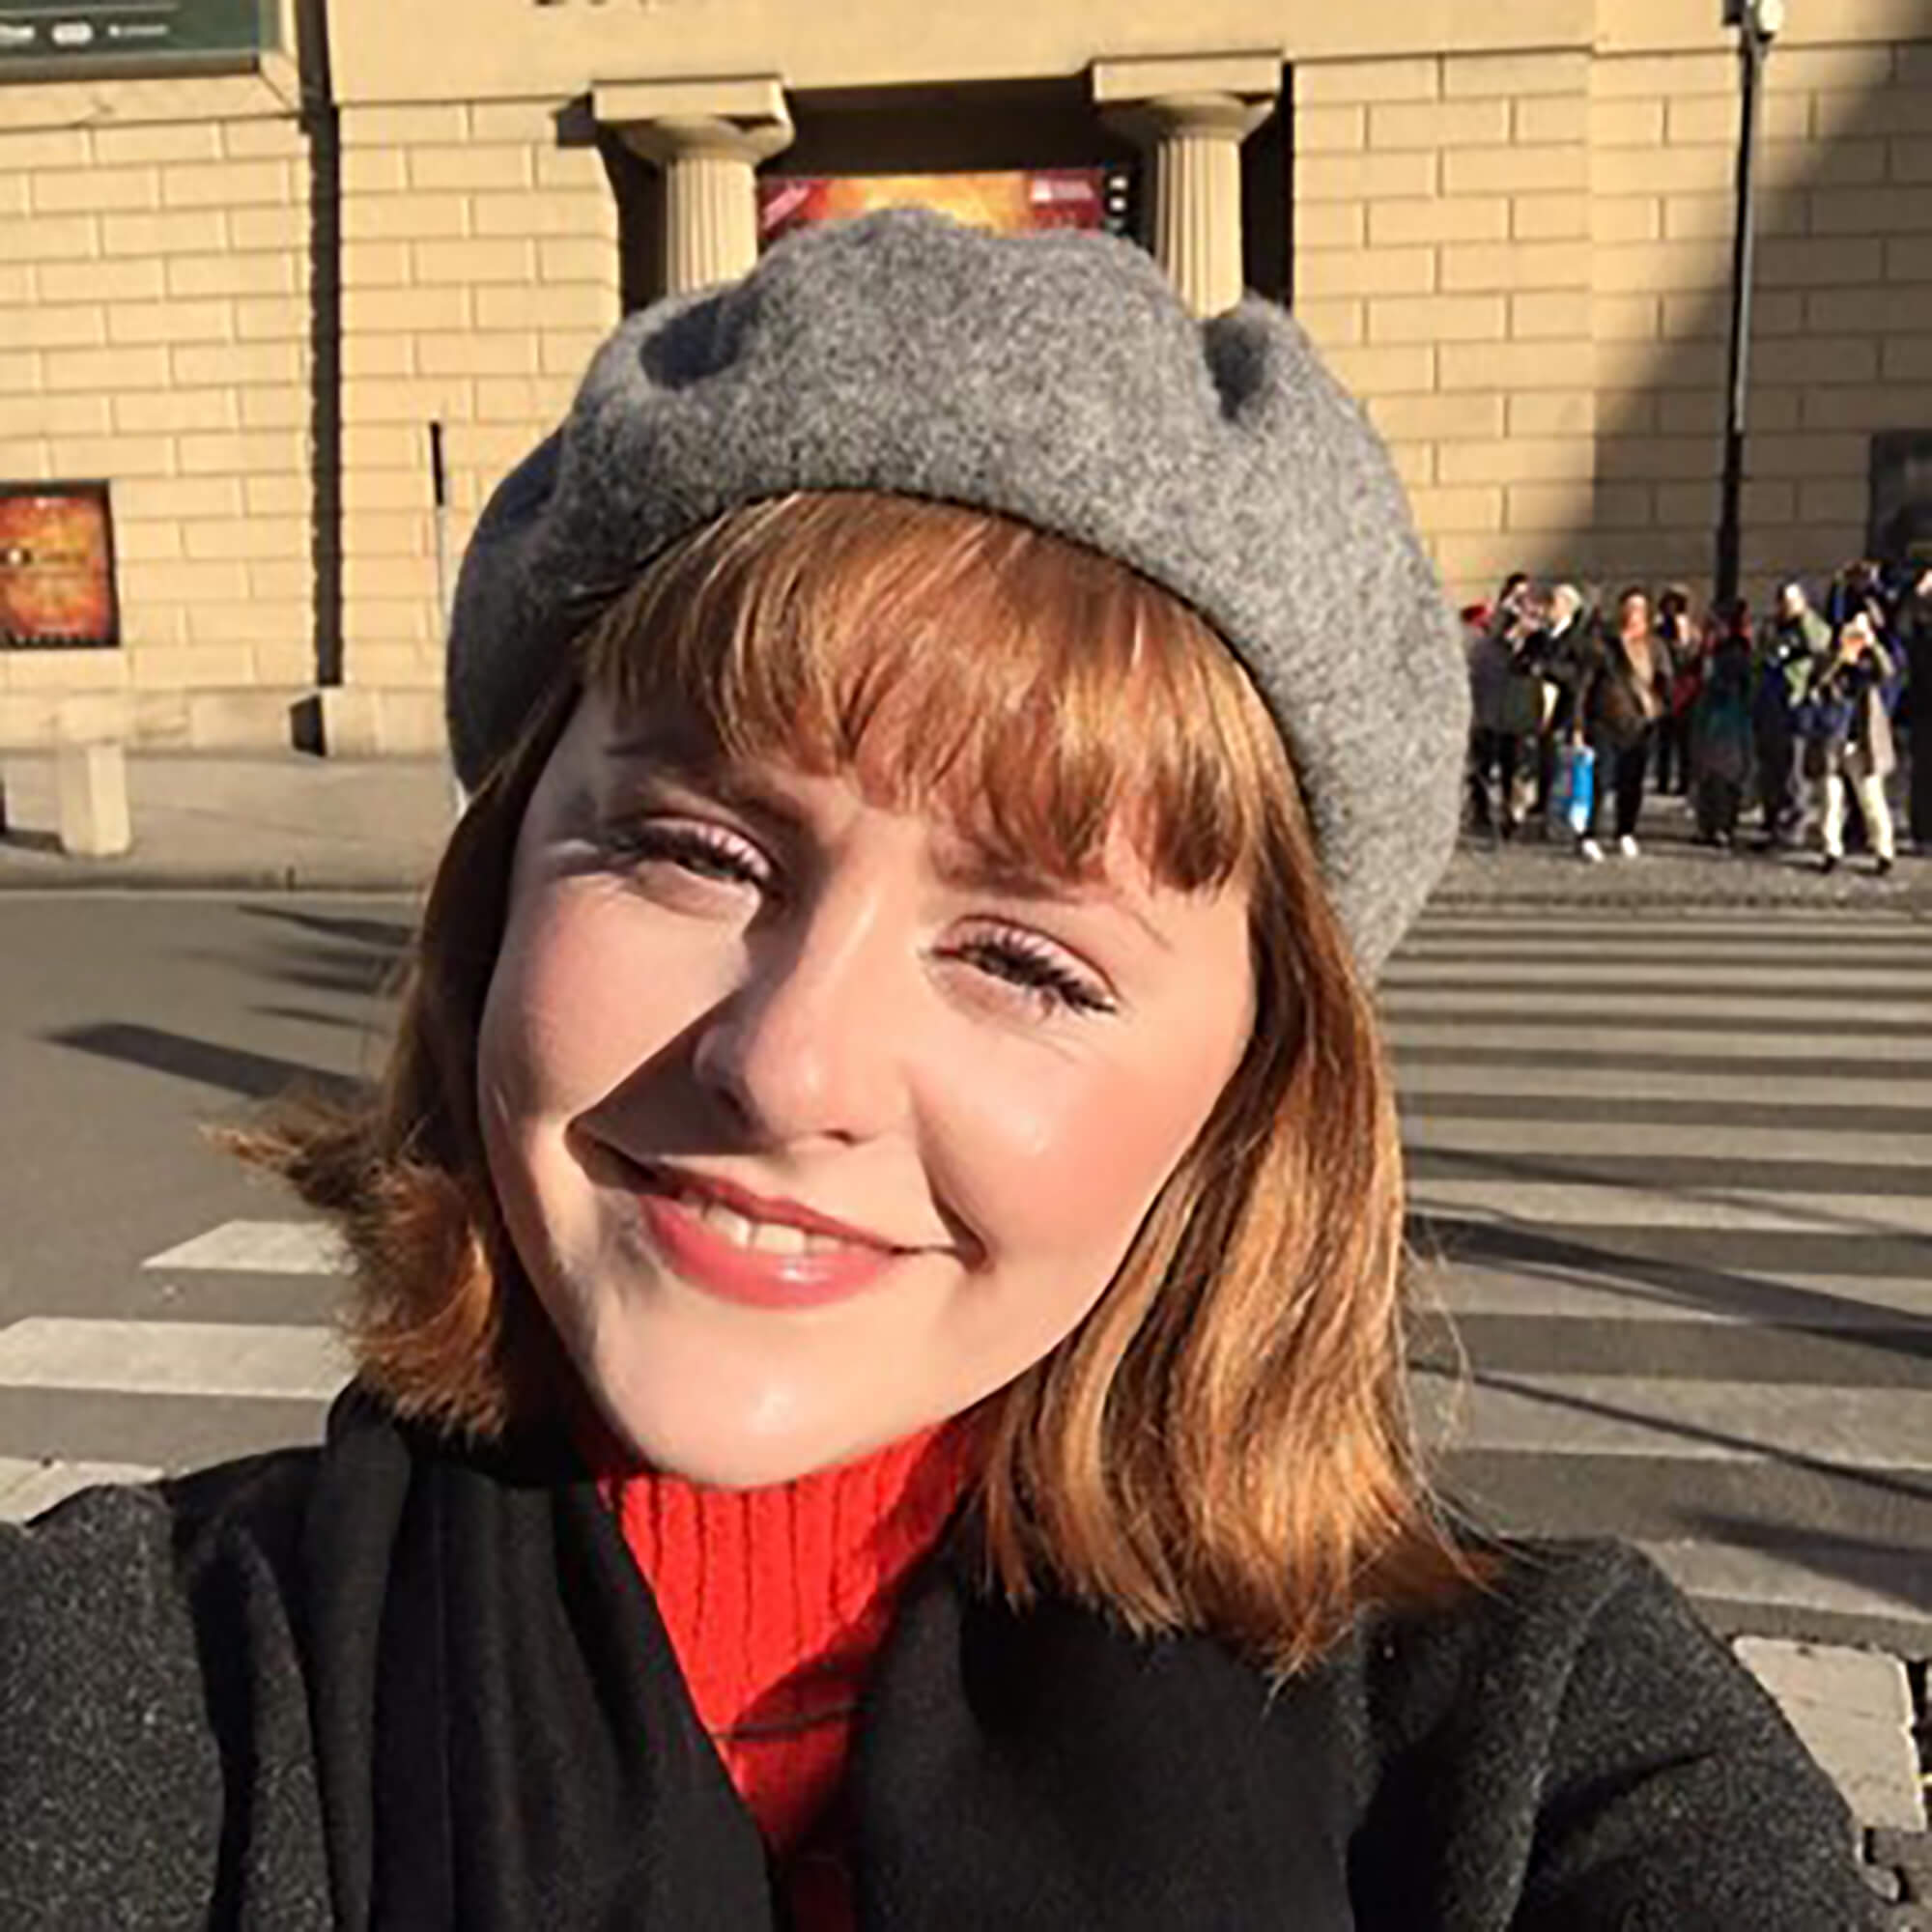 Ruby wearing a grey beret smiling.